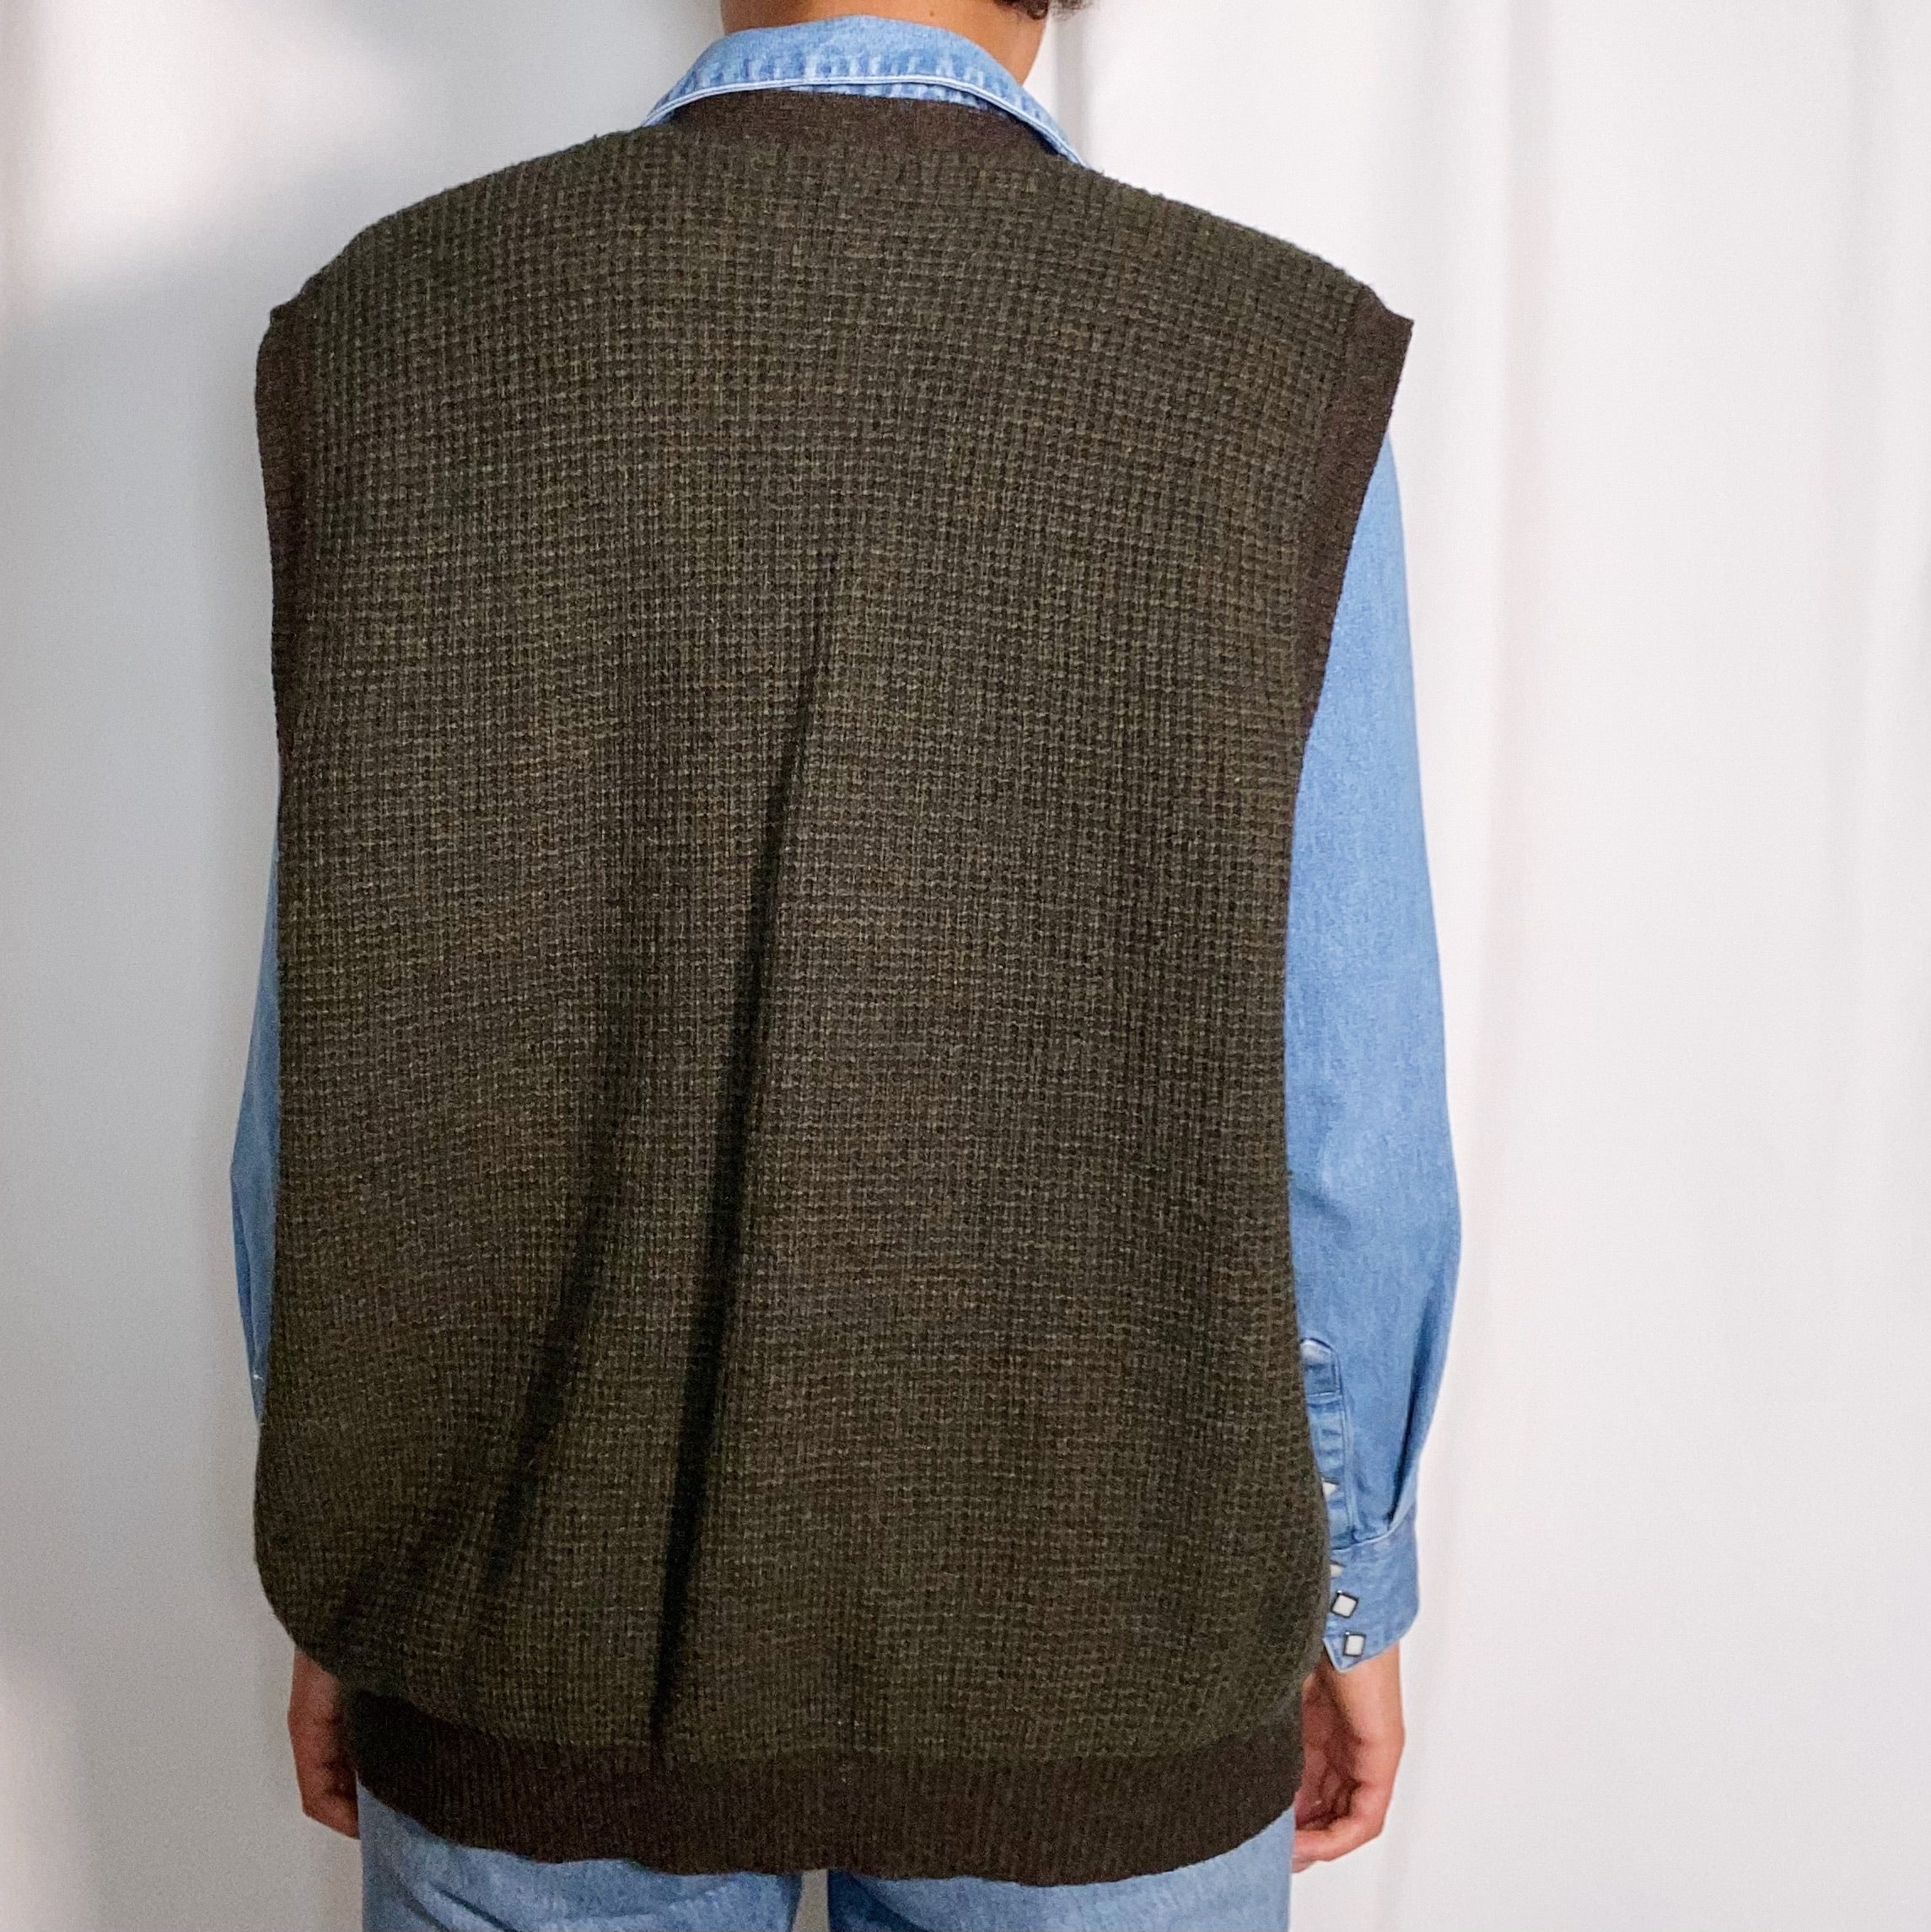 Vintage Club Room Wool Sweater Vest (size large)